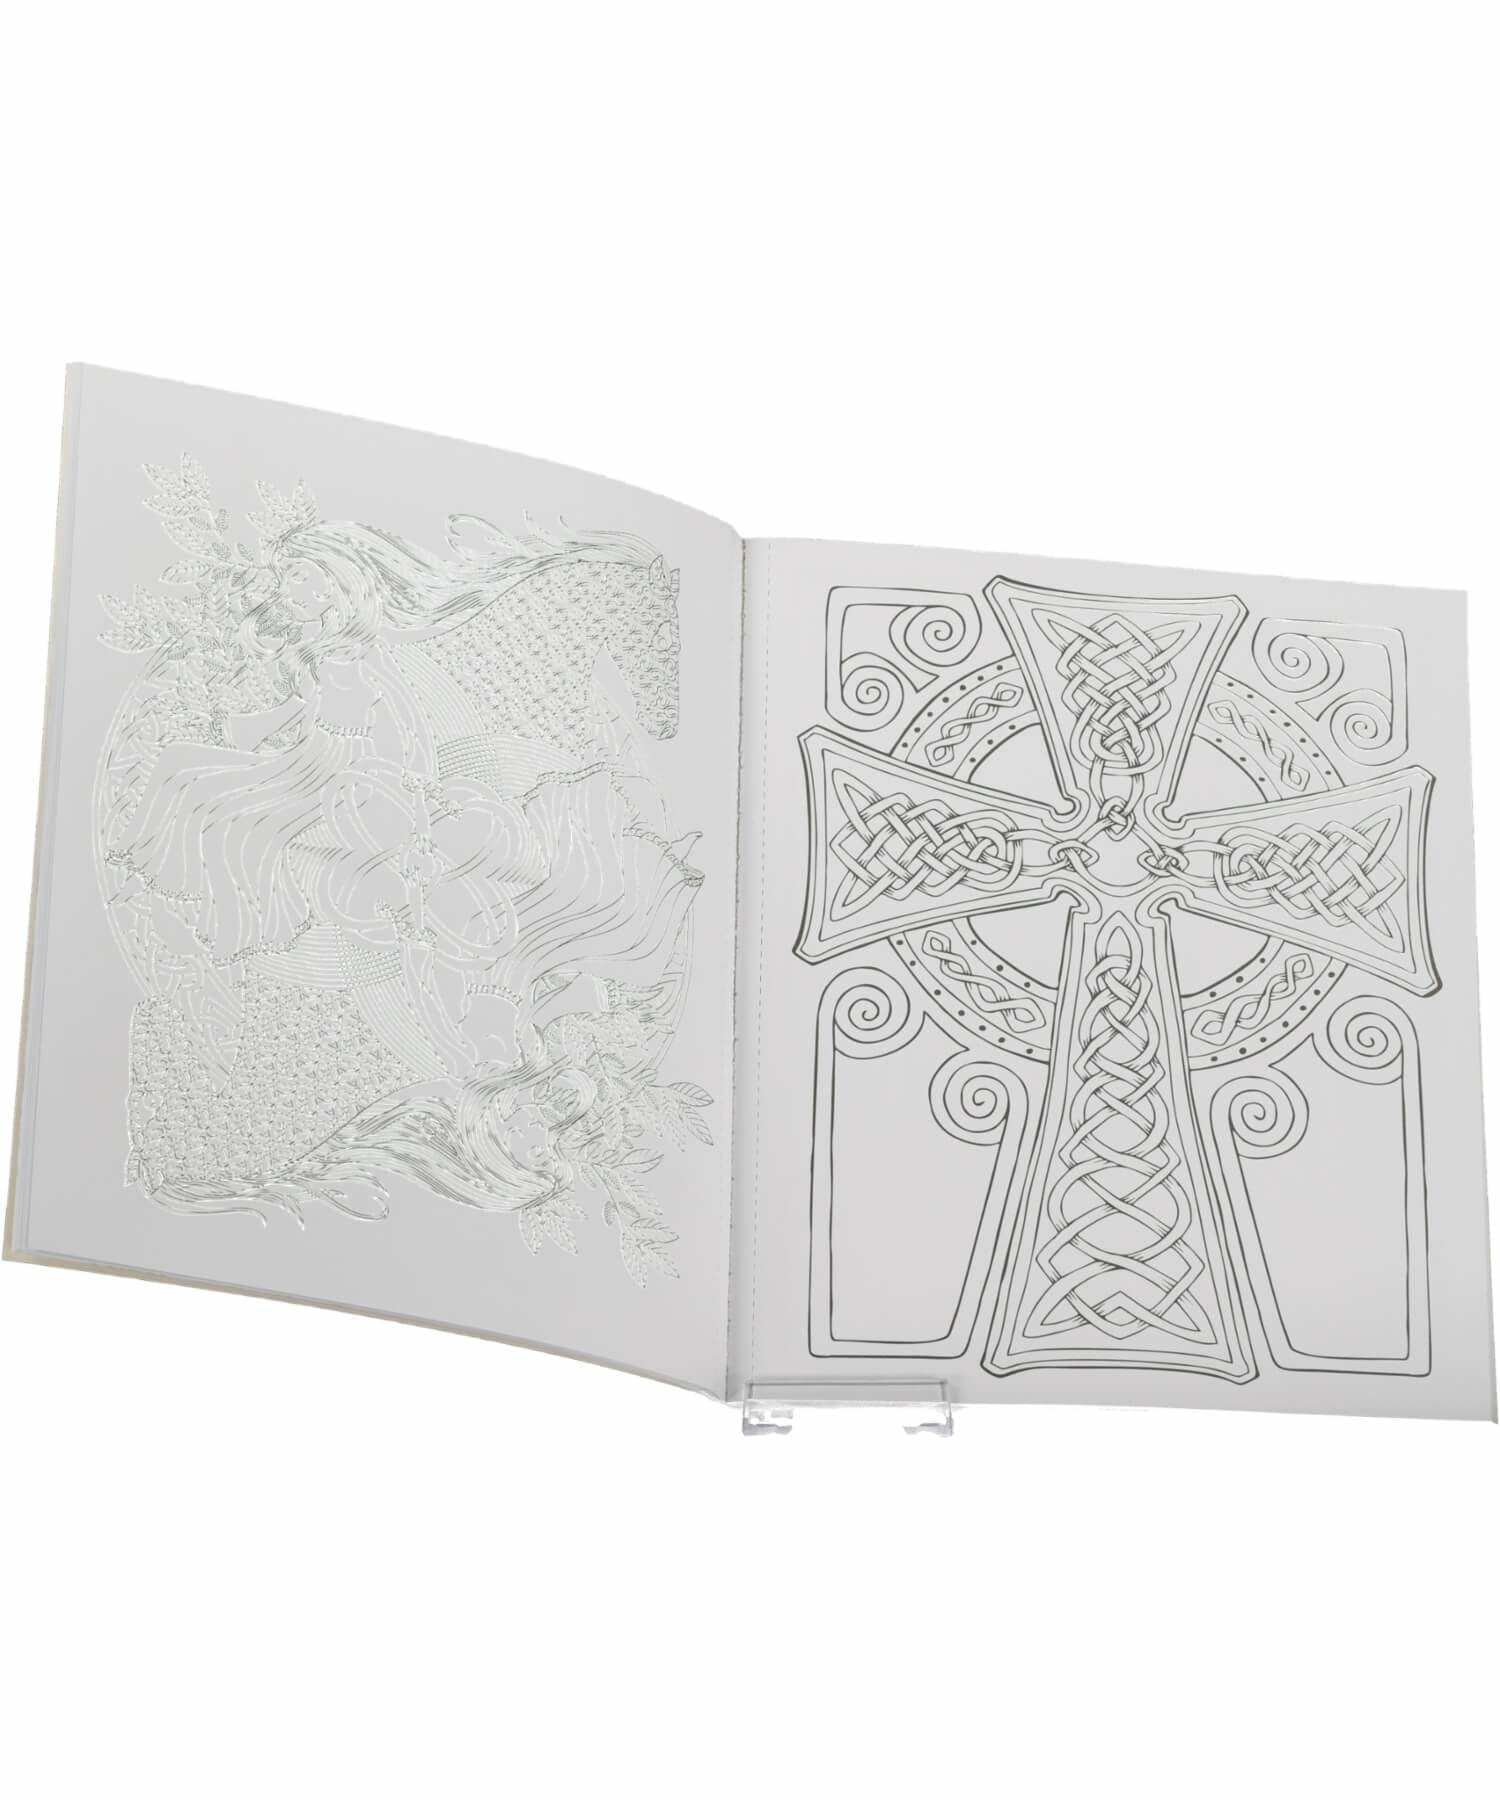 Calming Celtic Colouring - [Gill & MacMillan] - Books & Stationery - Irish Gifts